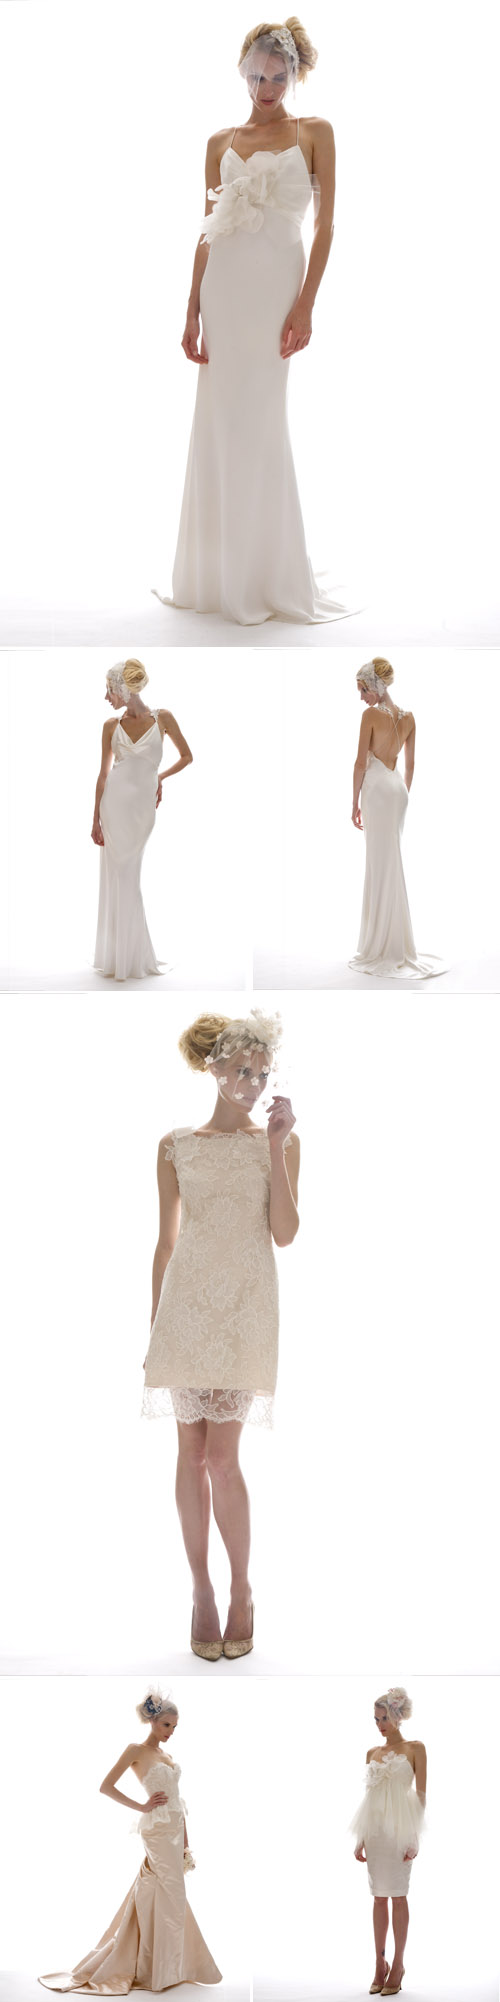 pretty Elizabeth Fillmore wedding dresses, perfect for destination weddings, Fall 2012 wedding dress and accessory collection